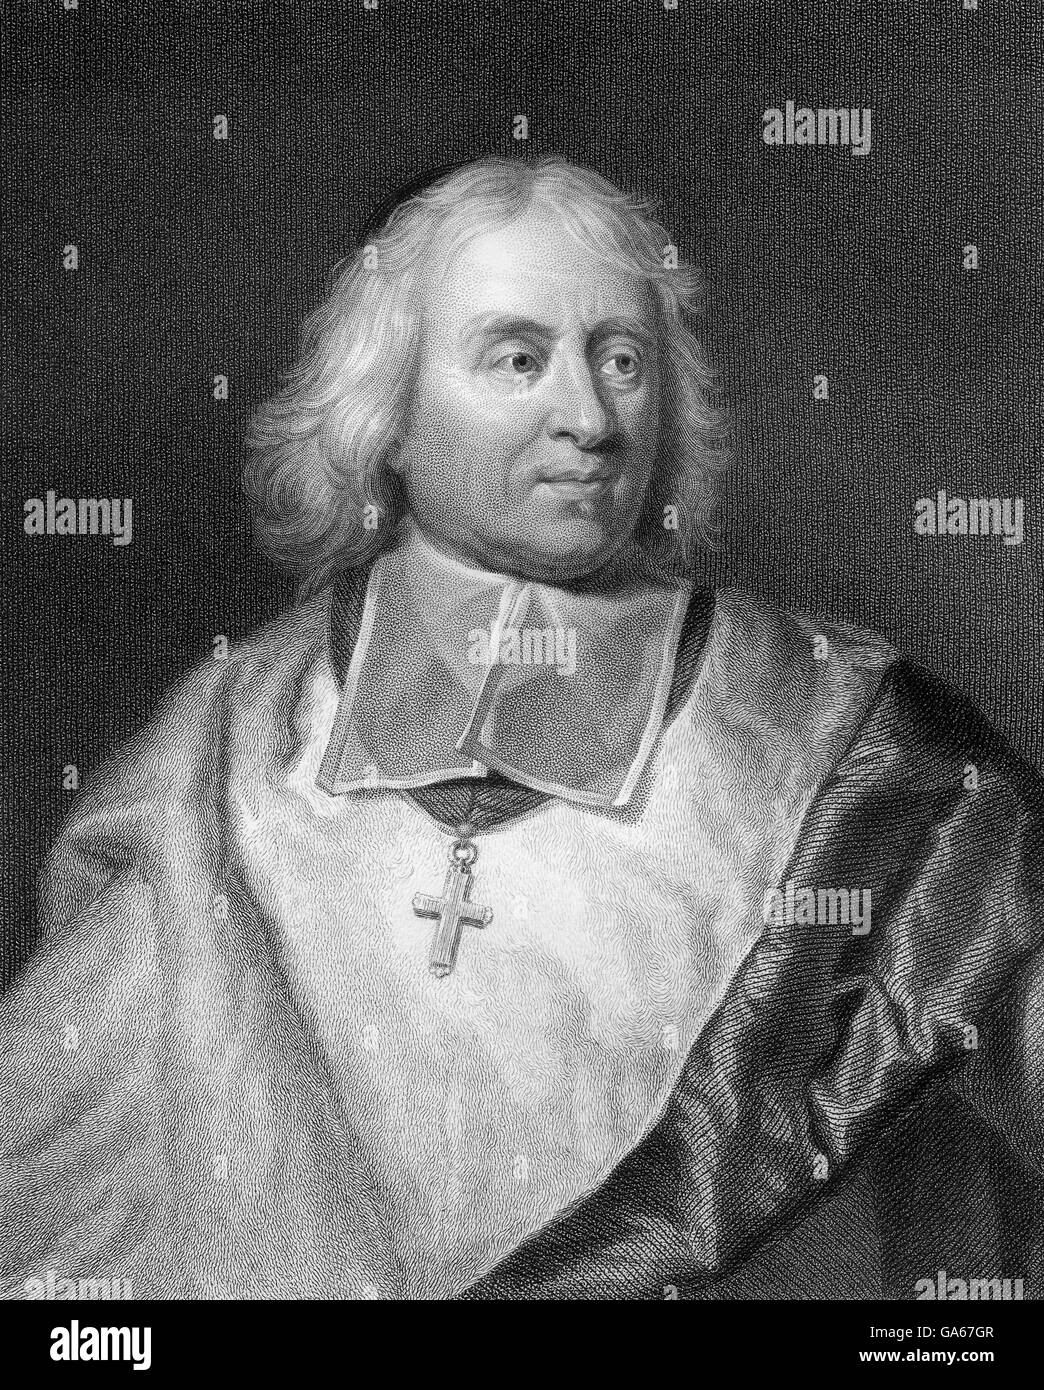 Jacques-Bénigne Bossuet, 1627-1704, a French bishop and theologian - Stock Image